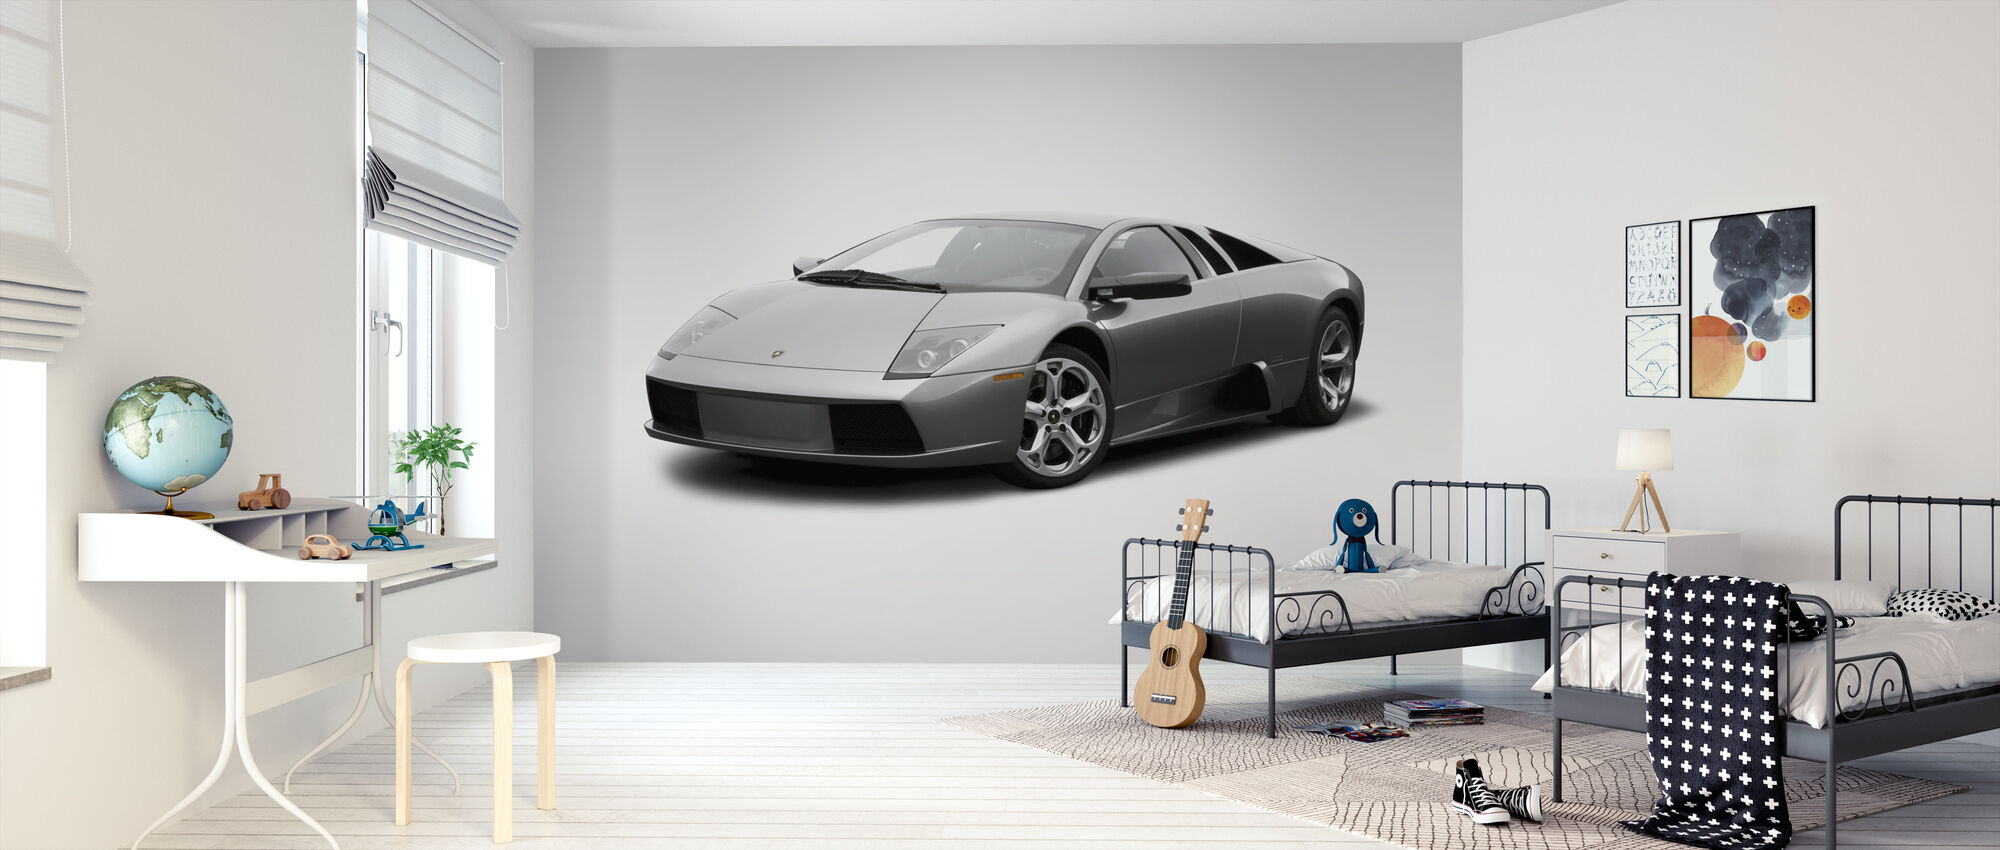 Lamborghini - Behang - Kinderkamer